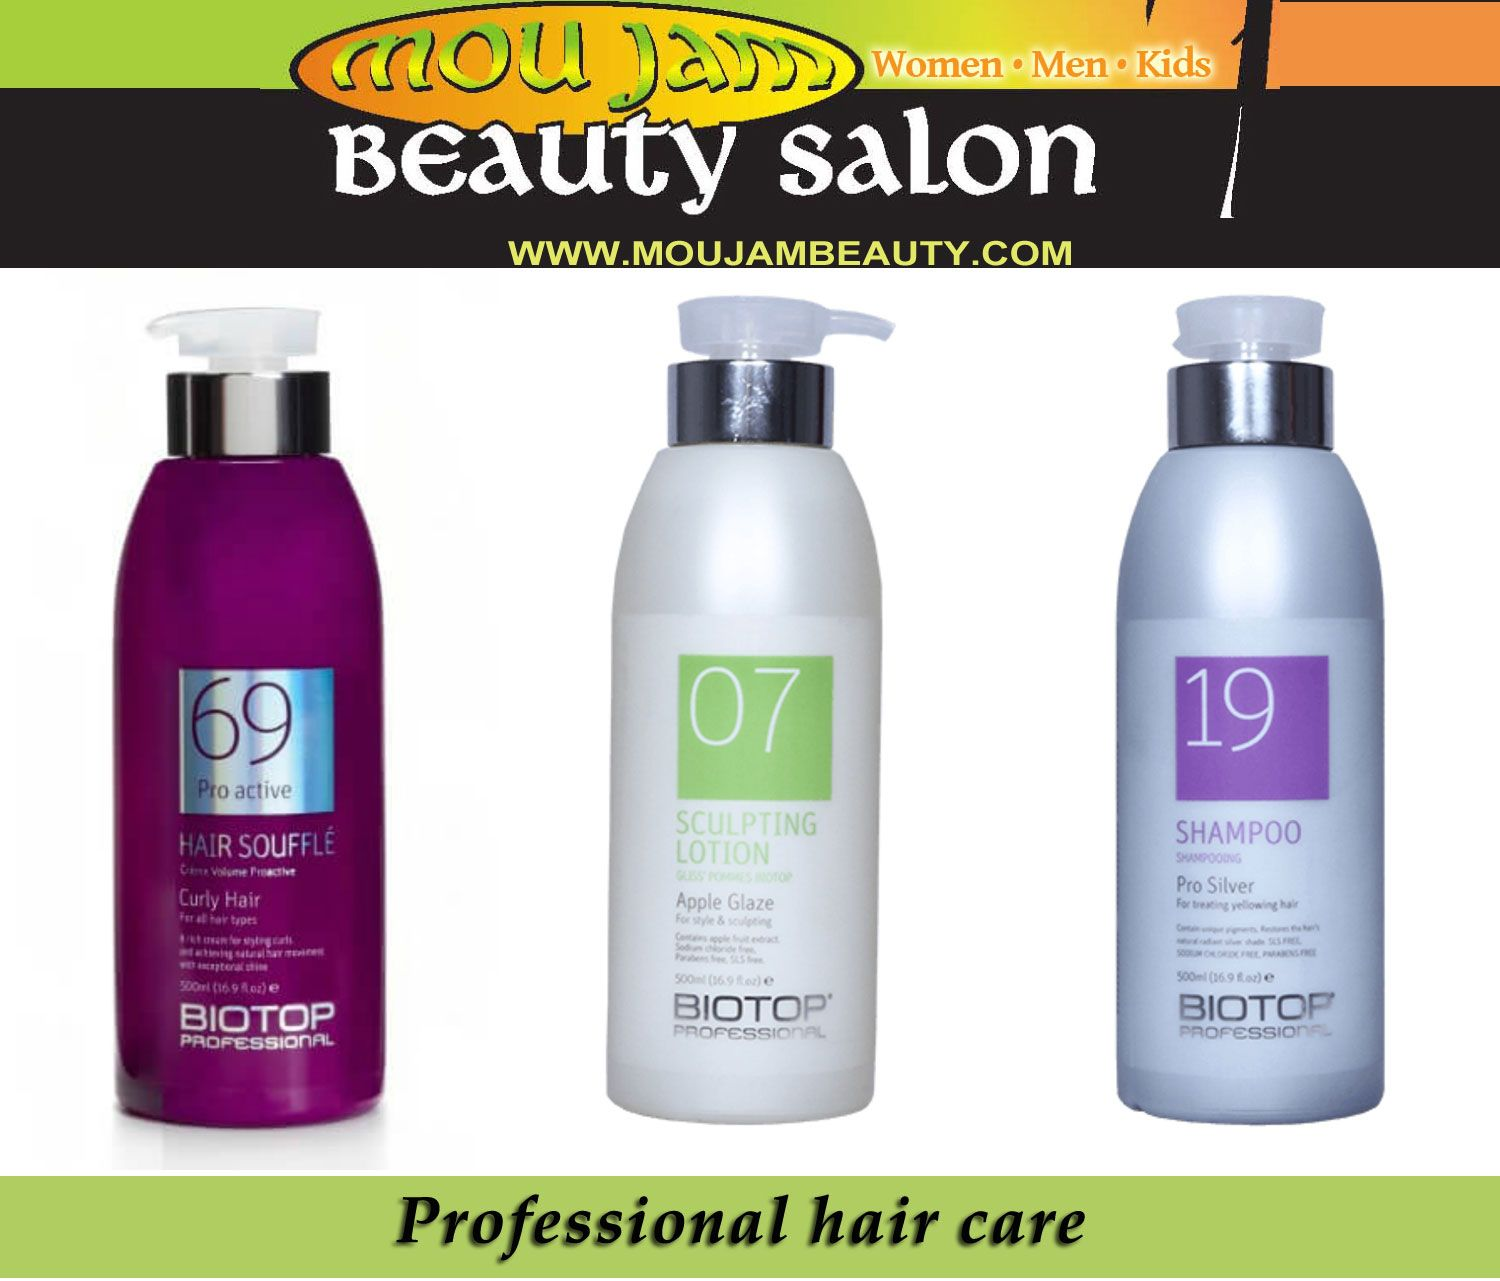 Pin by Mou Jam Beauty Salon on Mou Jam Hair Products (With